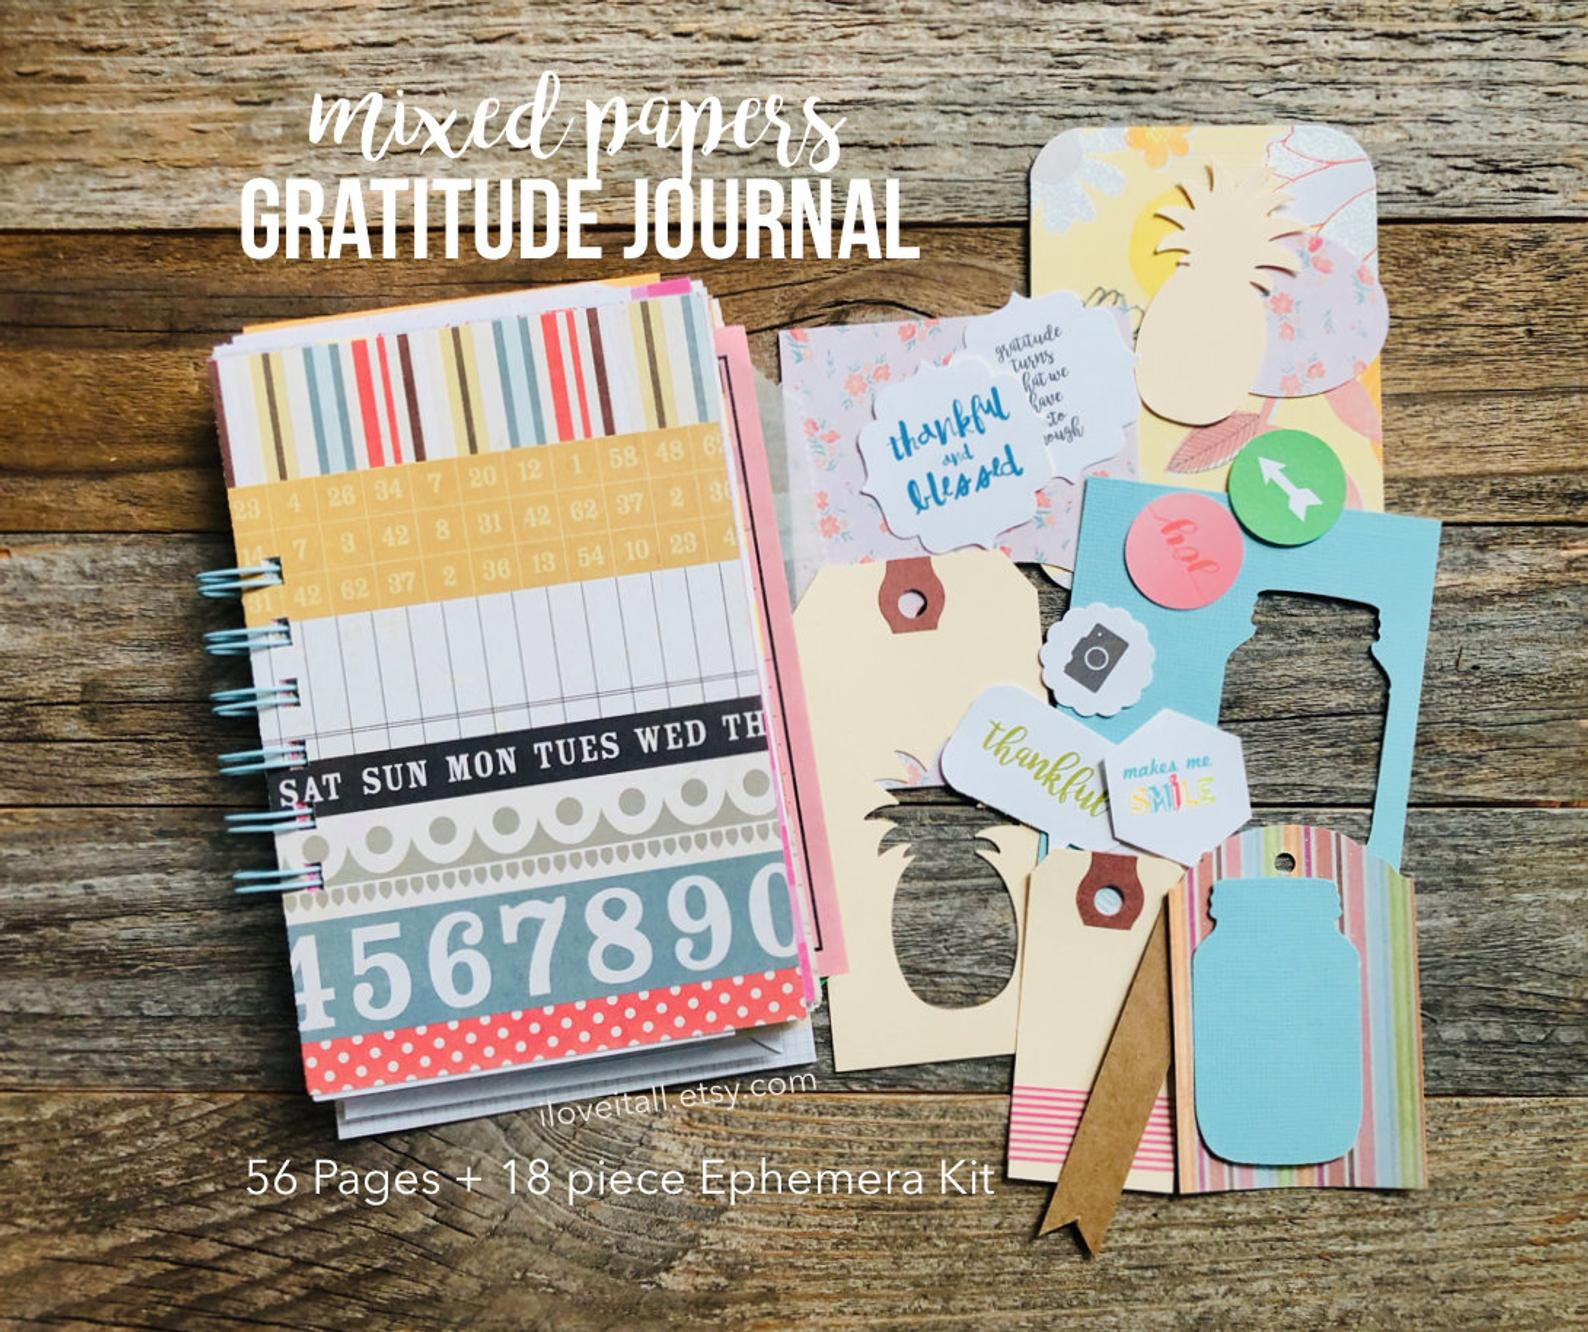 #Gratitude Journal #2020 #gratitude #journal #journaling #reflection journal #grateful #gratefulness #thankfulness journal #Things I Am Grateful For #midori #Travelers Notebook